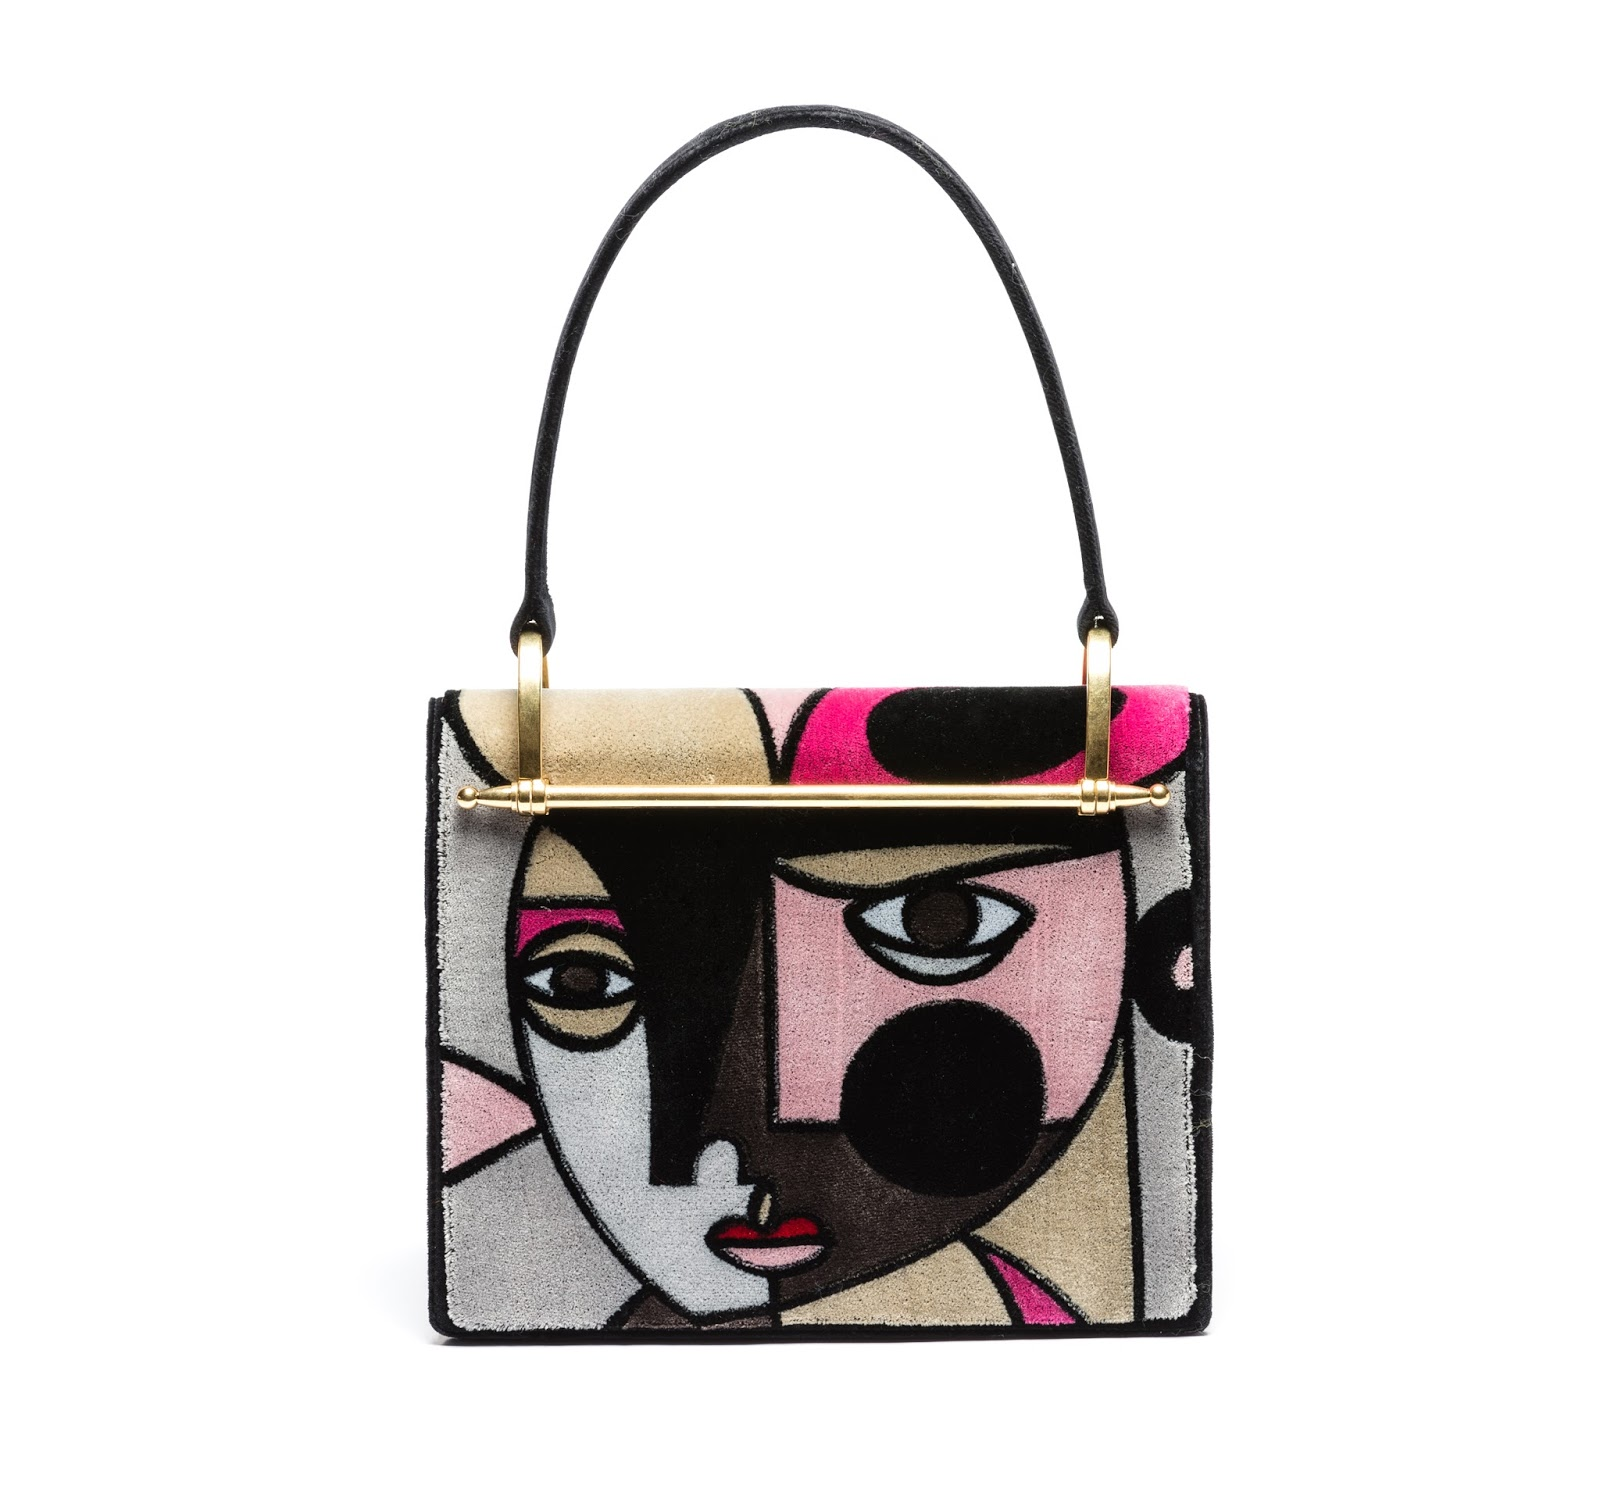 Prada's Face Bag From PreFall 2017